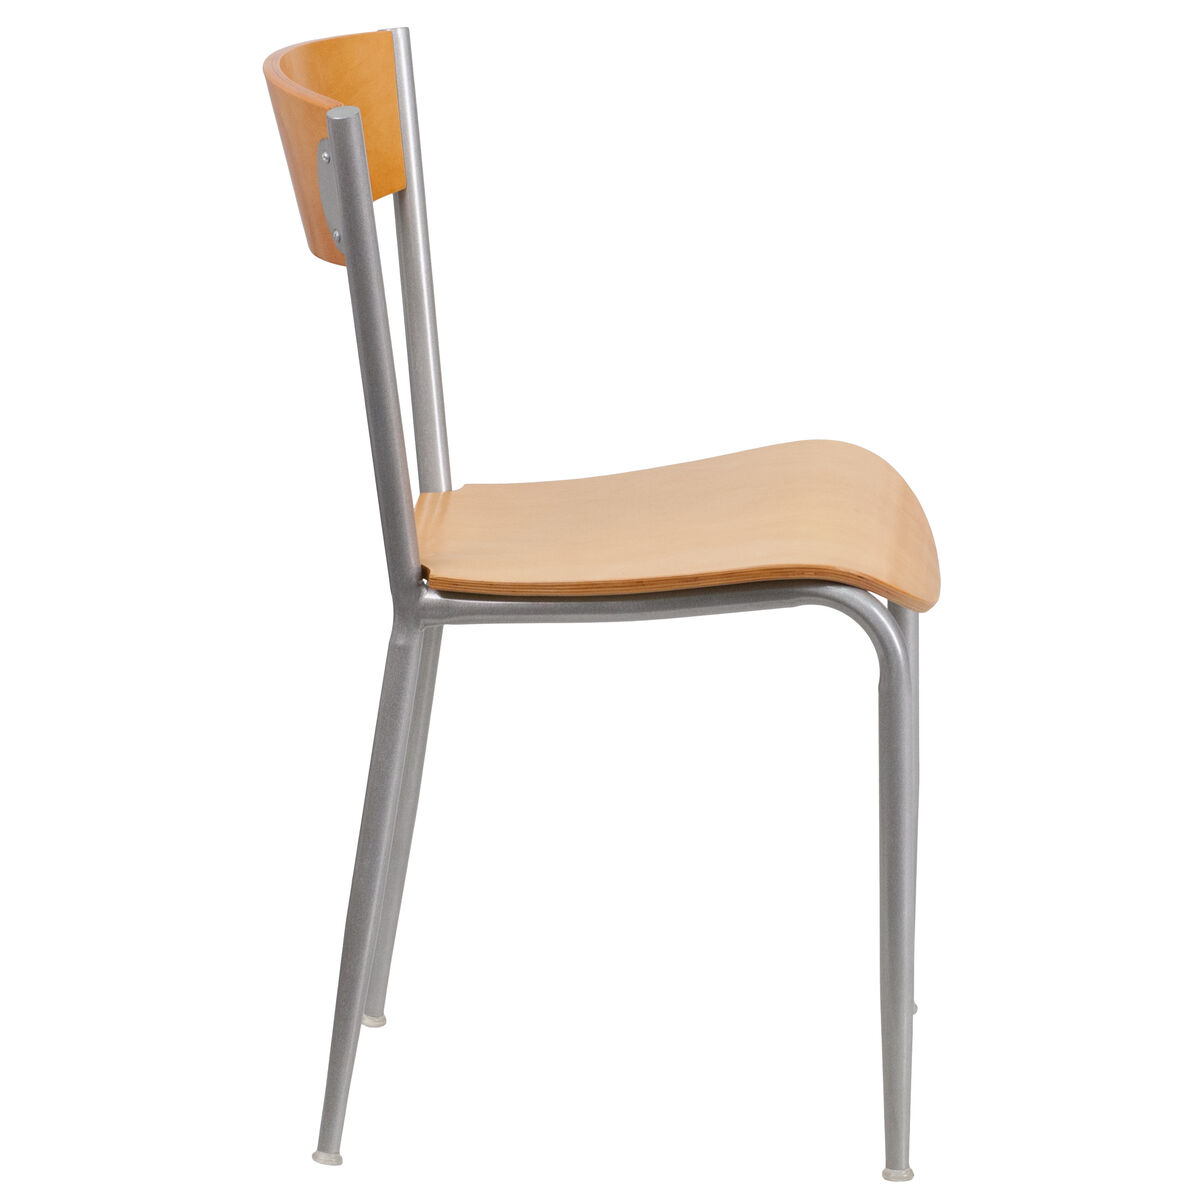 Silver Open Chair Nat Seat Bfdh 90717 Nat Tdr